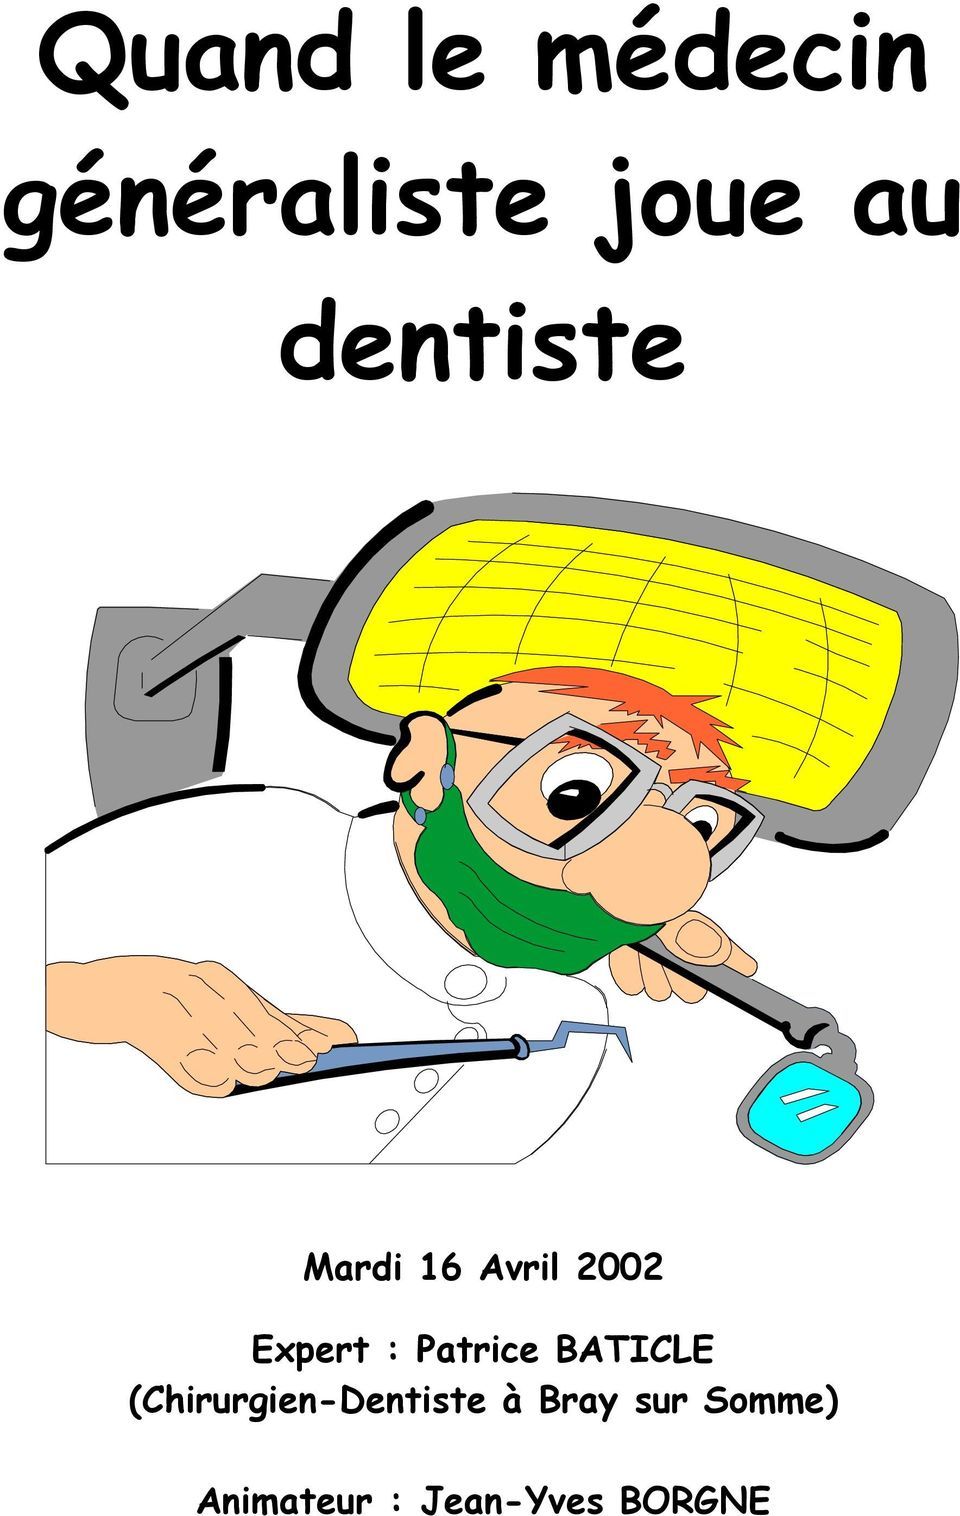 Patrice BATICLE (Chirurgien-Dentiste à